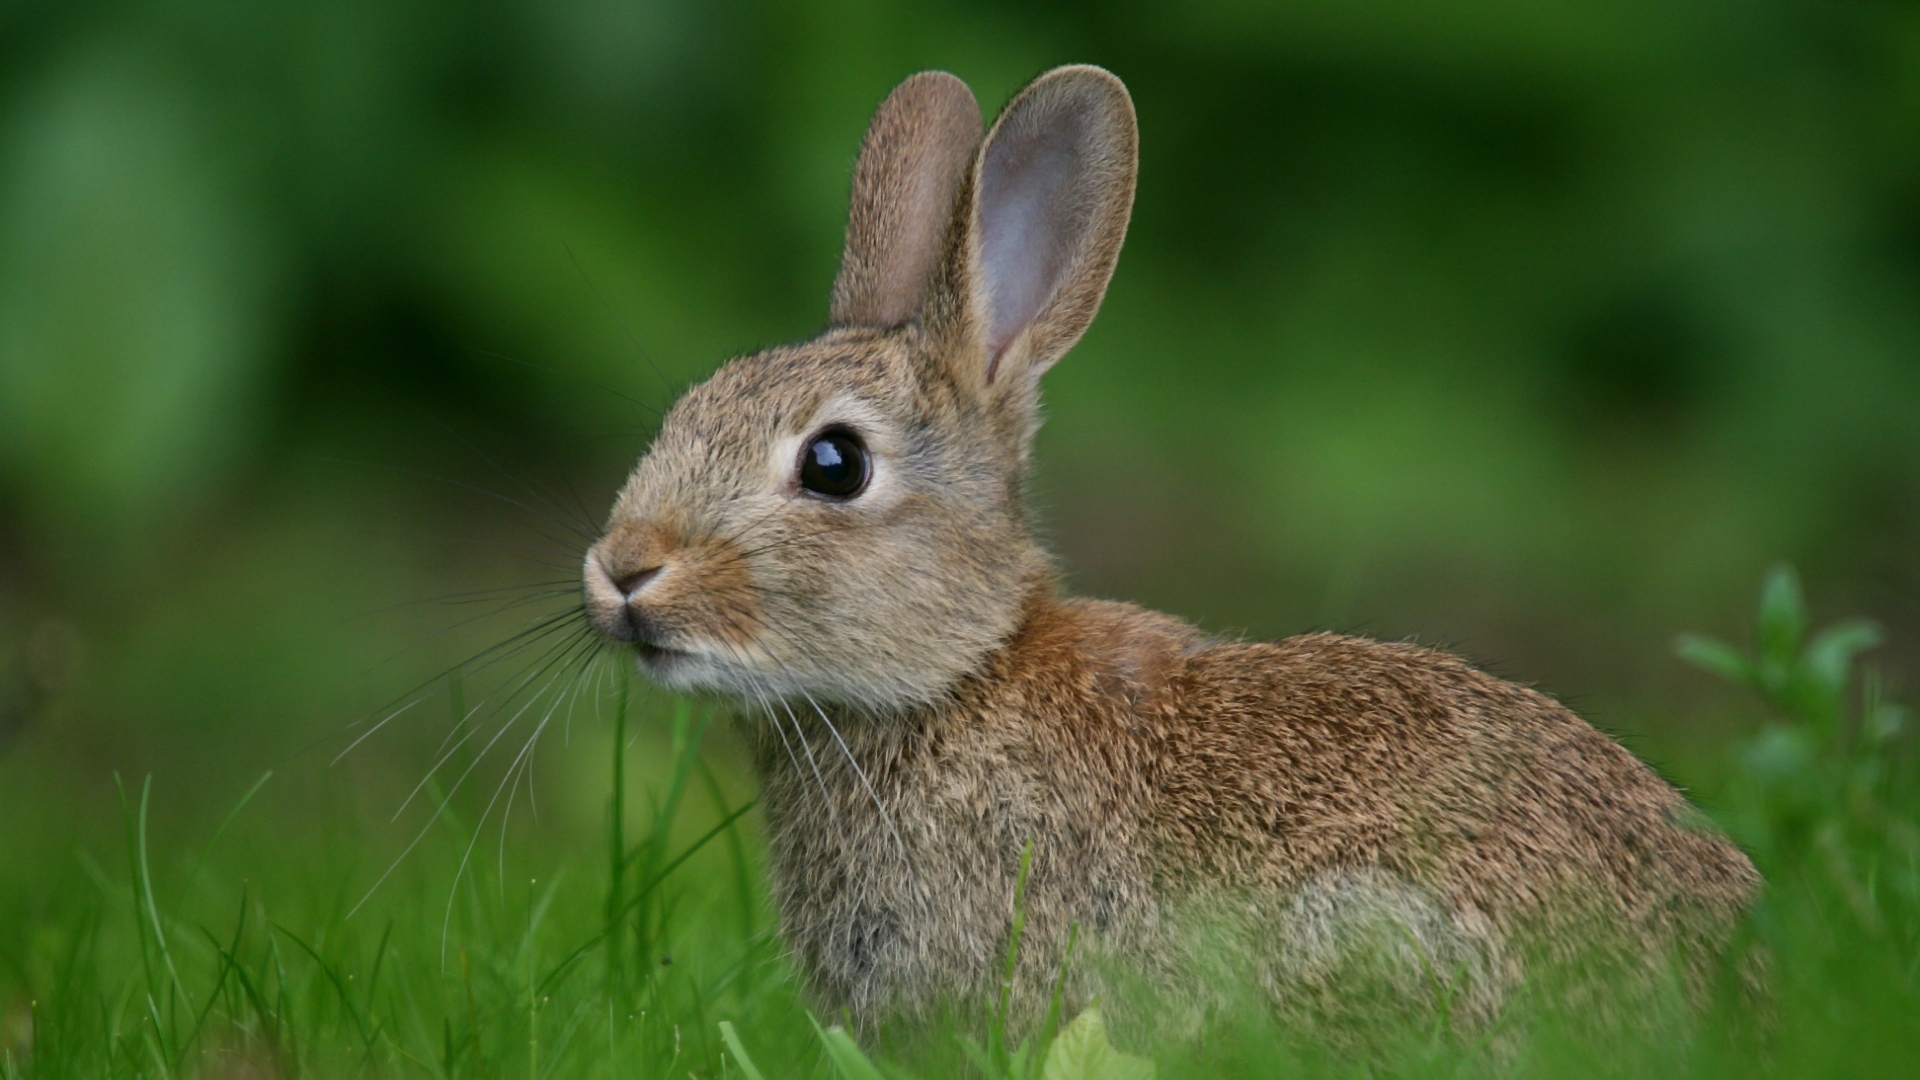 rabbit wallpapers high quality download free